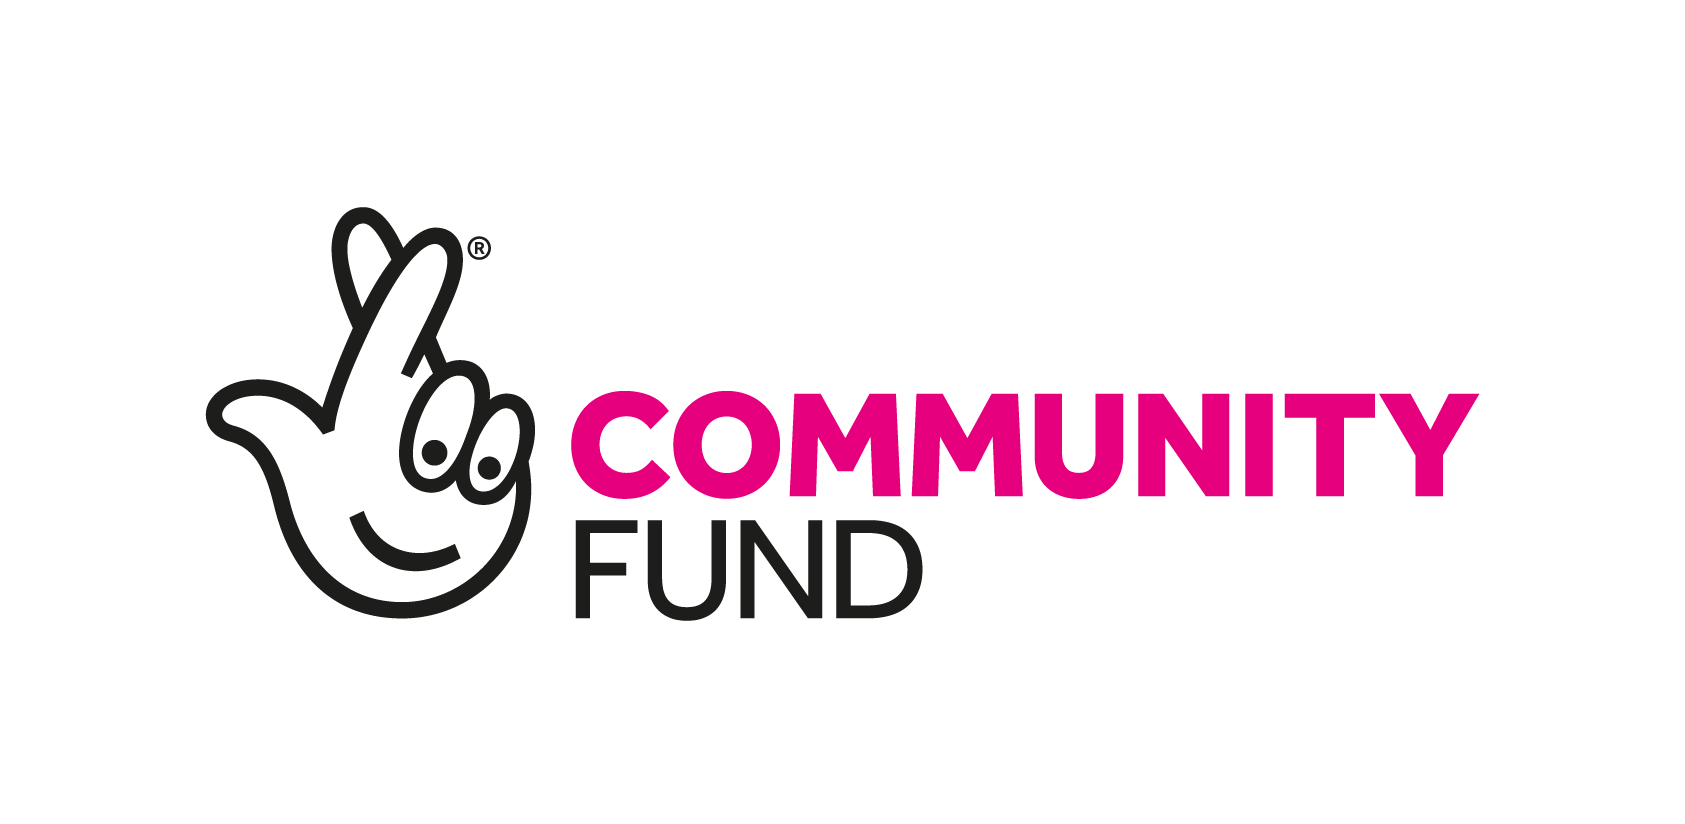 All 12 Fulfilling Lives projects are funded by The National Lottery Community Fund.